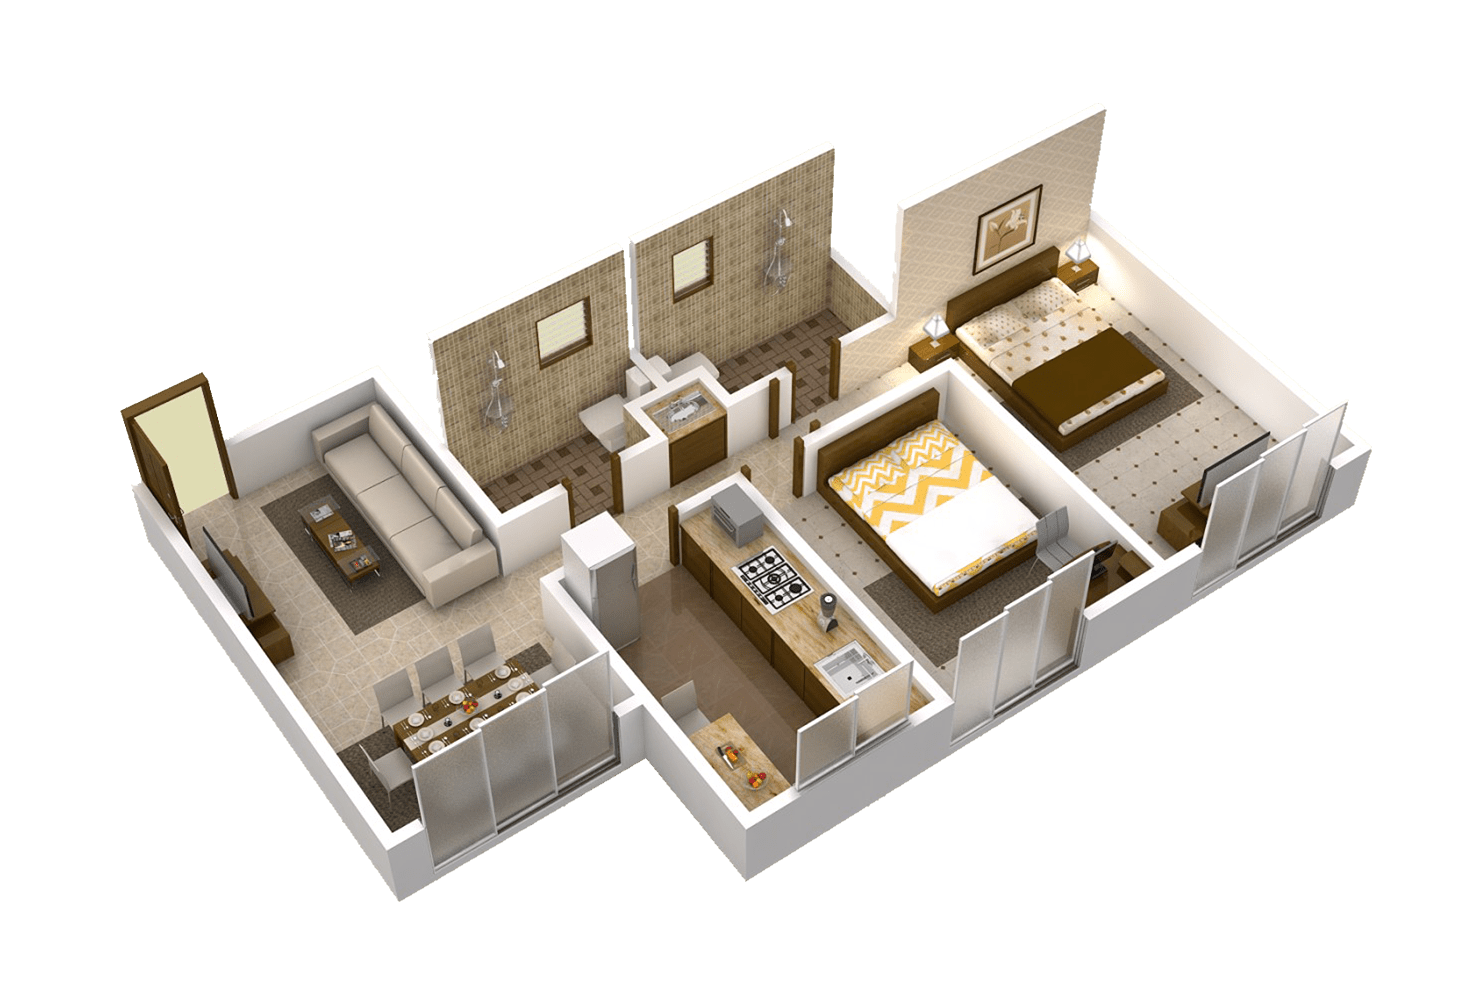 Matoshree Nisarg Floor Plans B wing 690 Sq.Ft. – New Construction In Mulund East